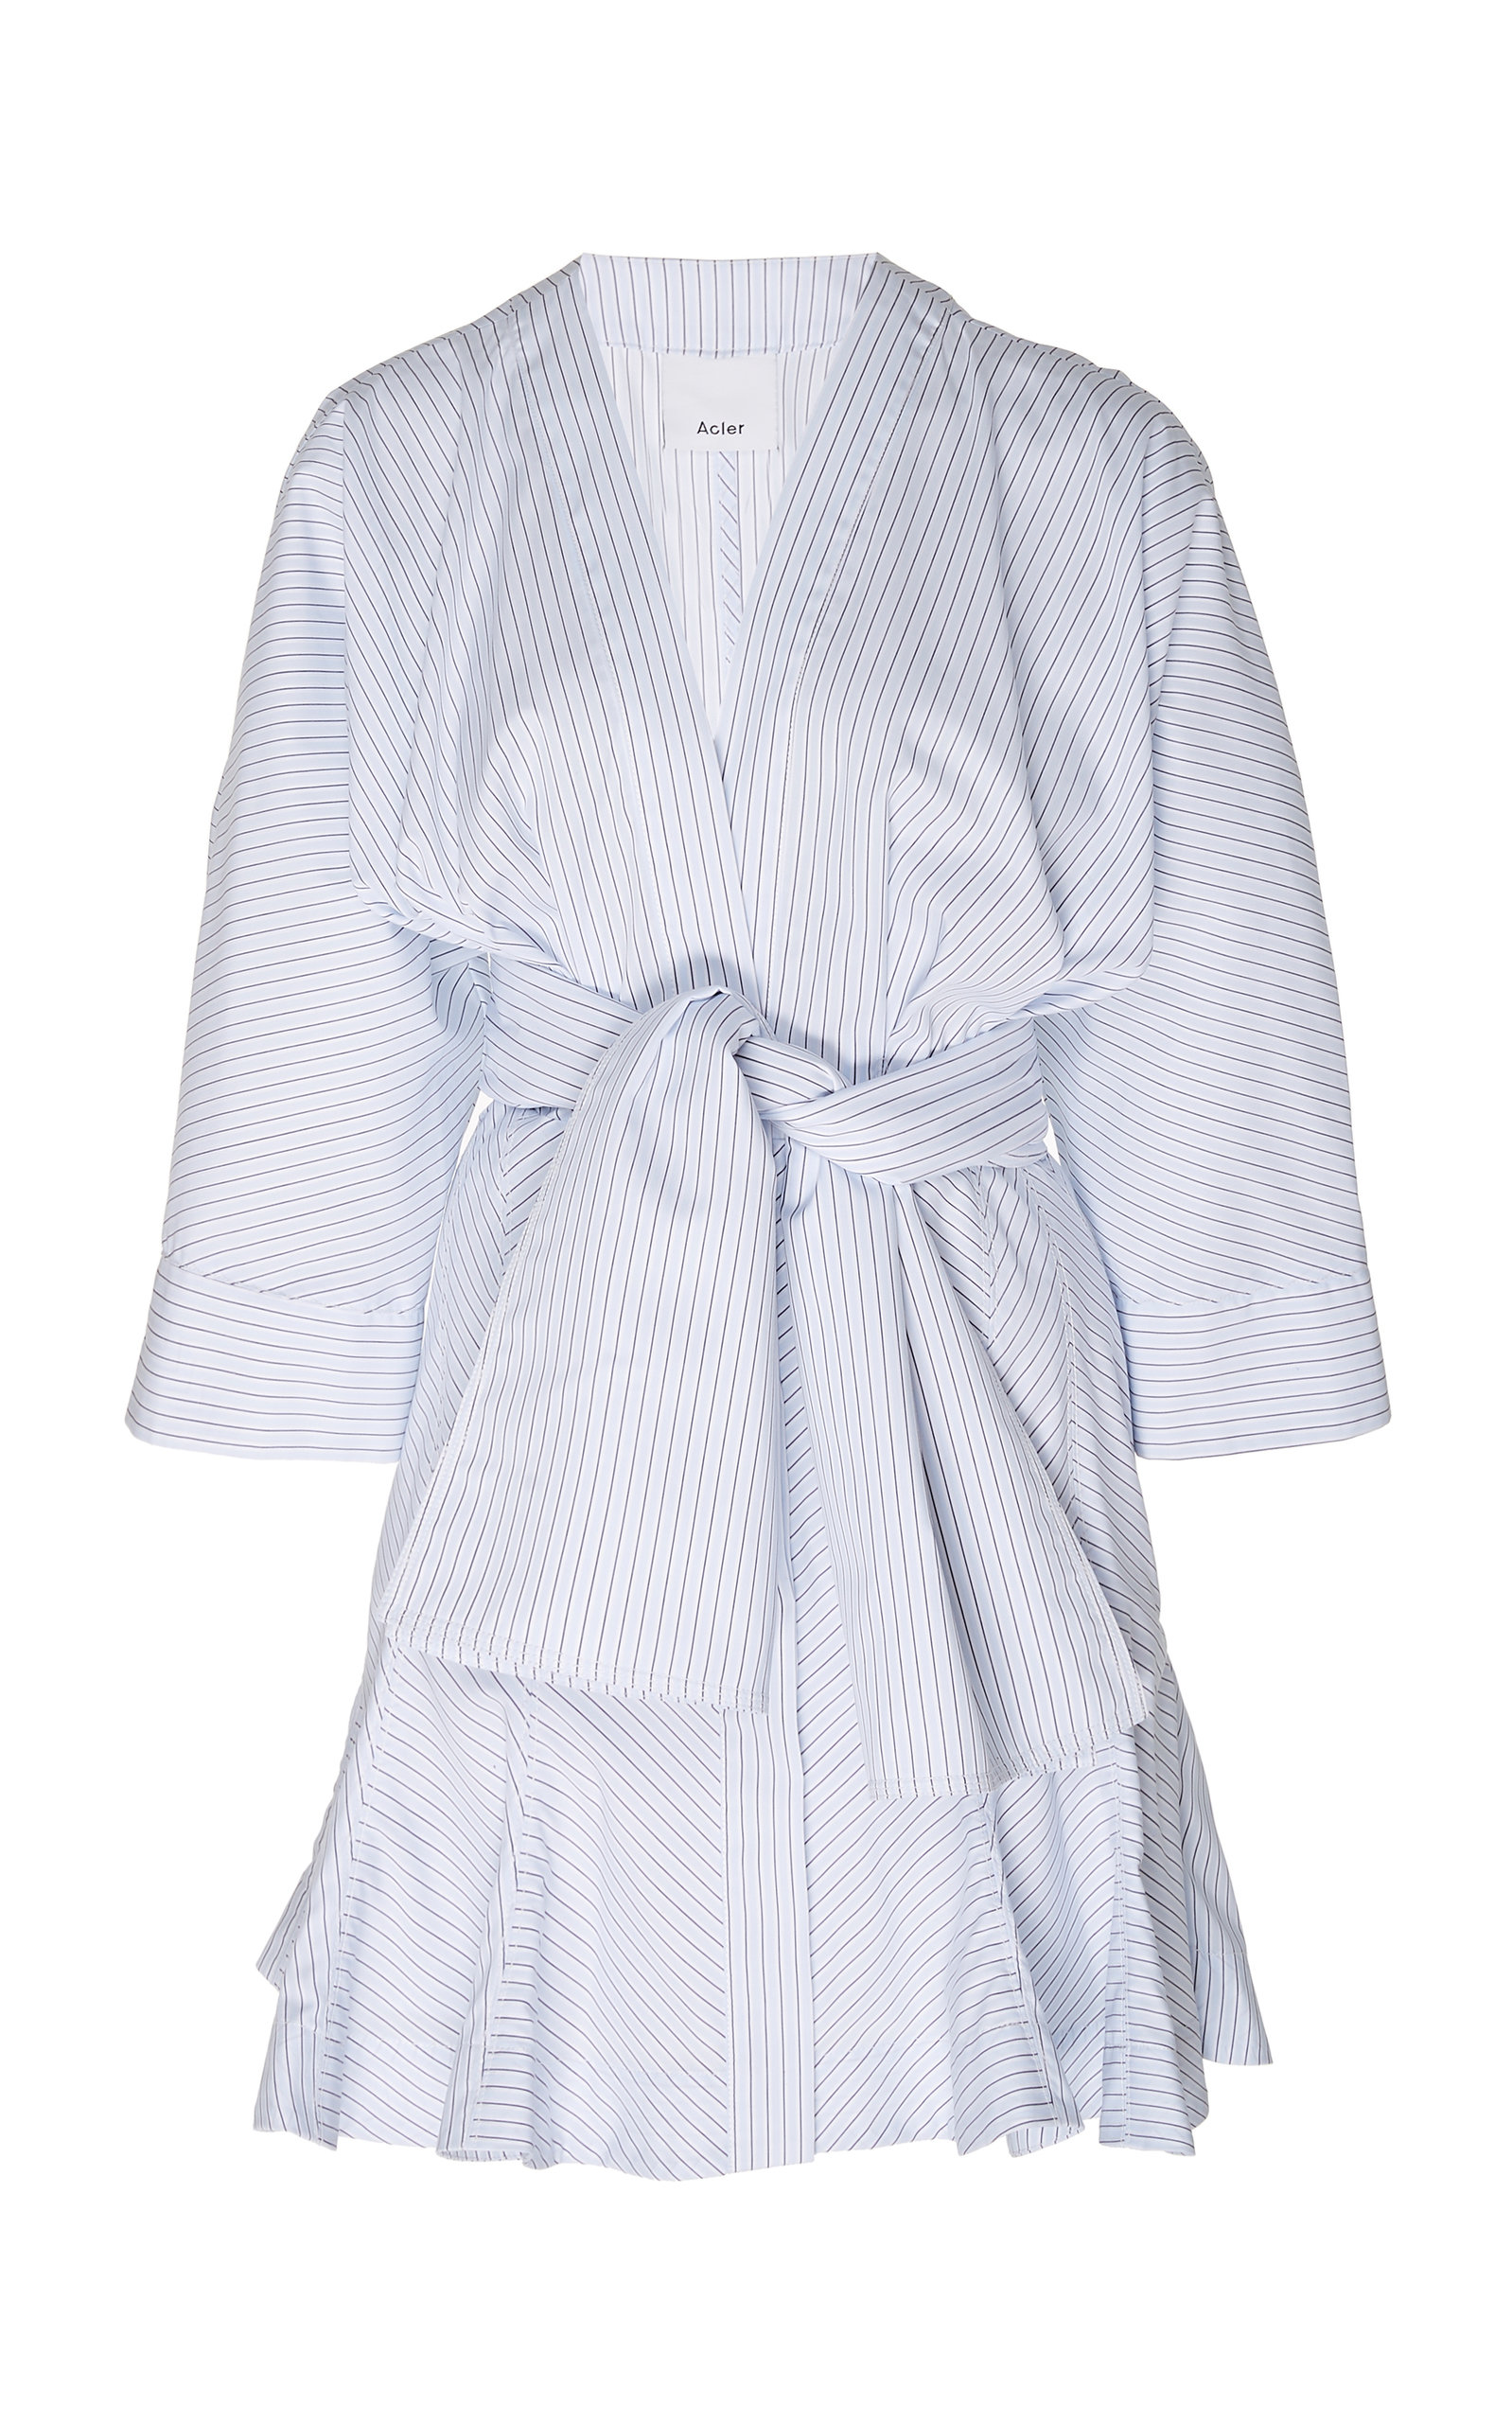 Buy Acler Lipton Cotton Shirt Stripe Dress online, shop Acler at the best price